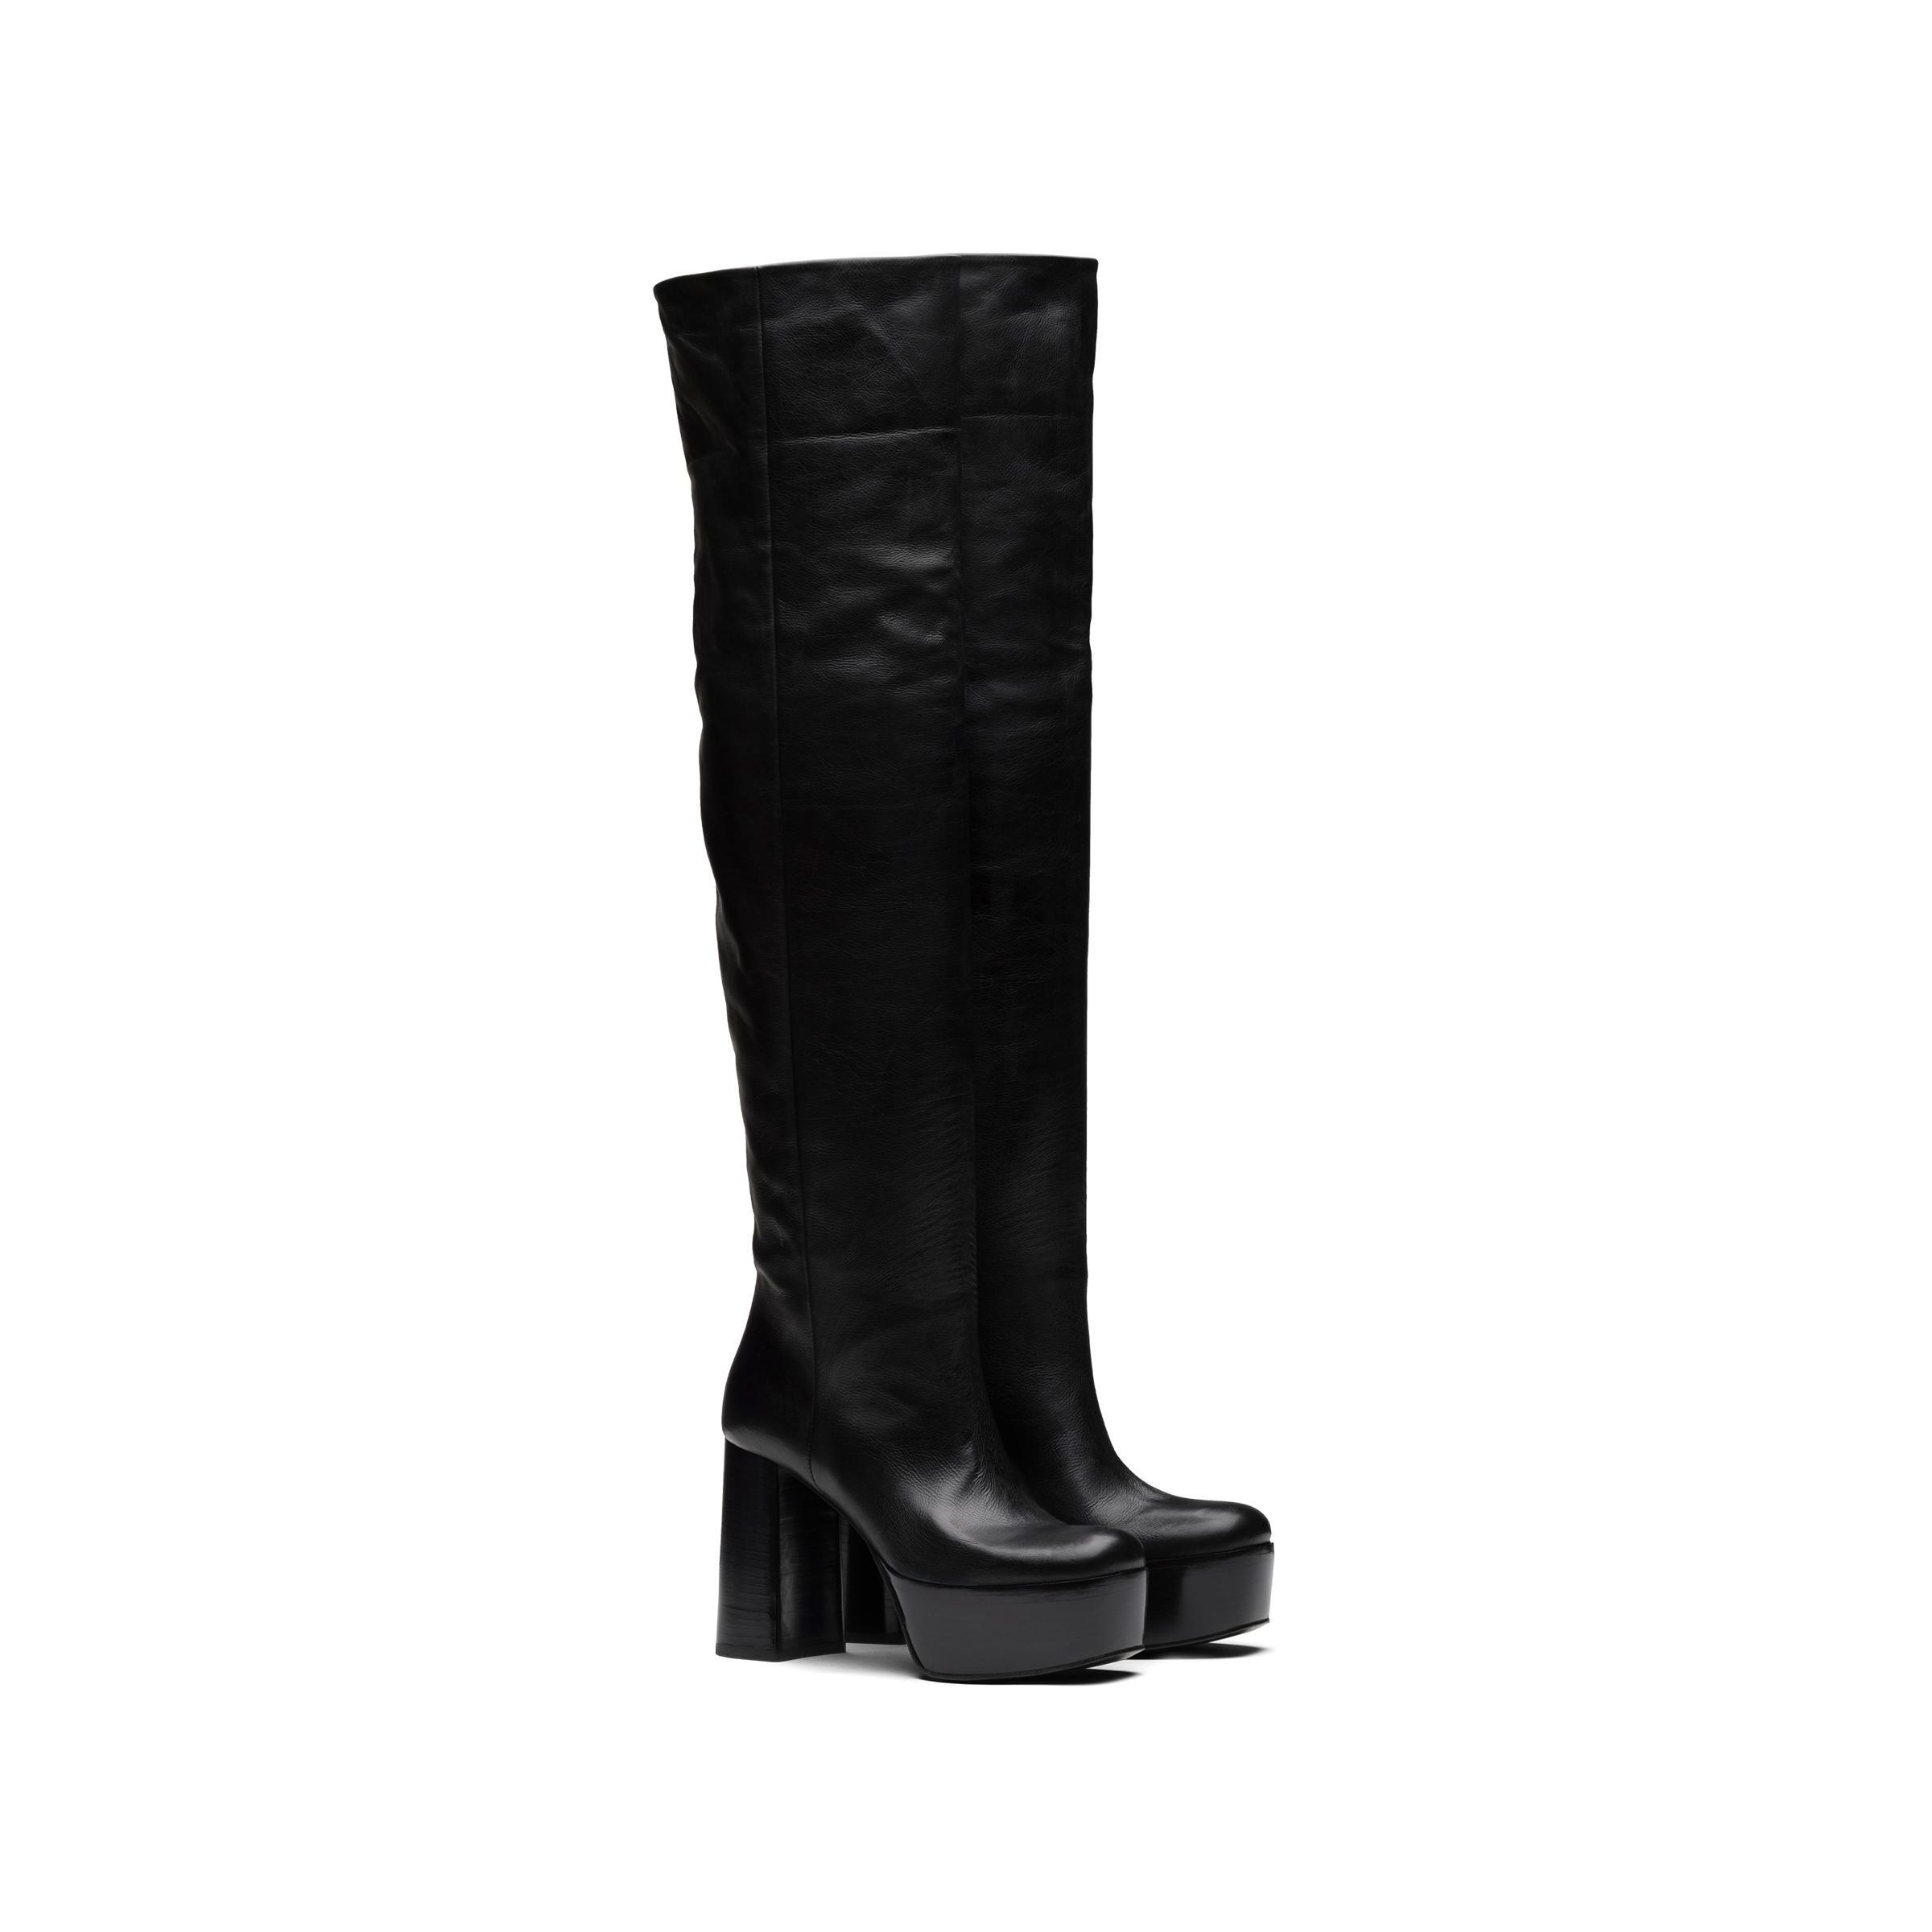 Leather Boots Women Black